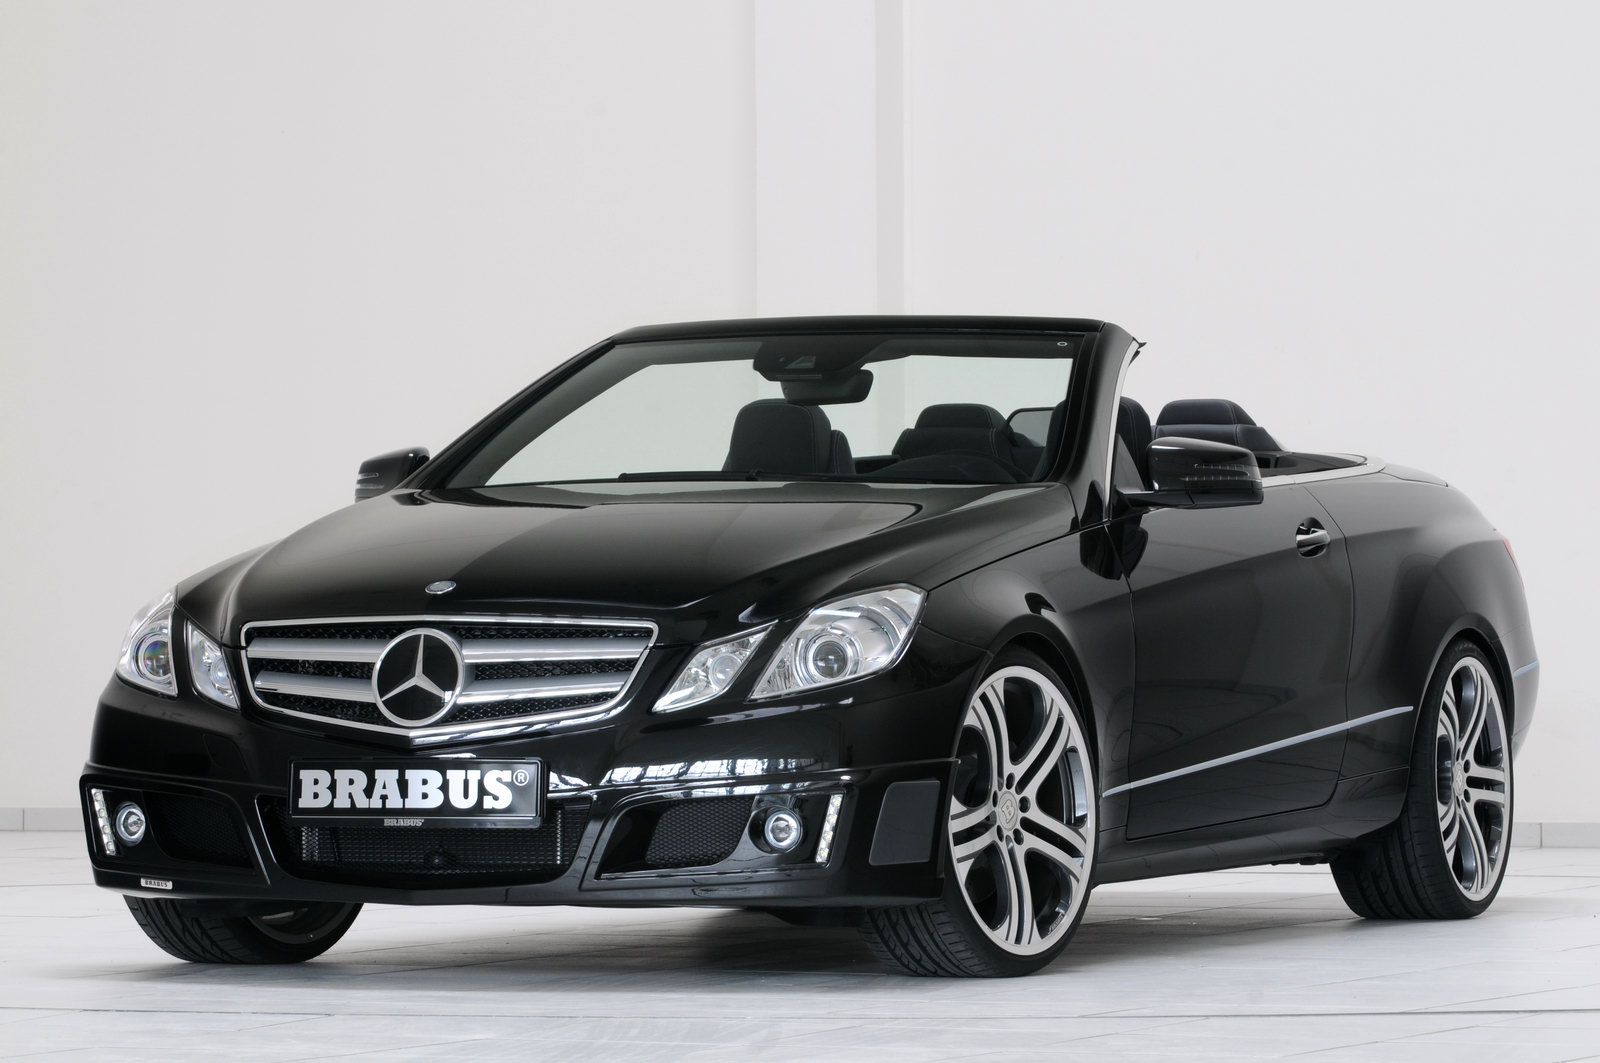 New alter cars brabus does the new mercedes benz e class for Convertible mercedes benz